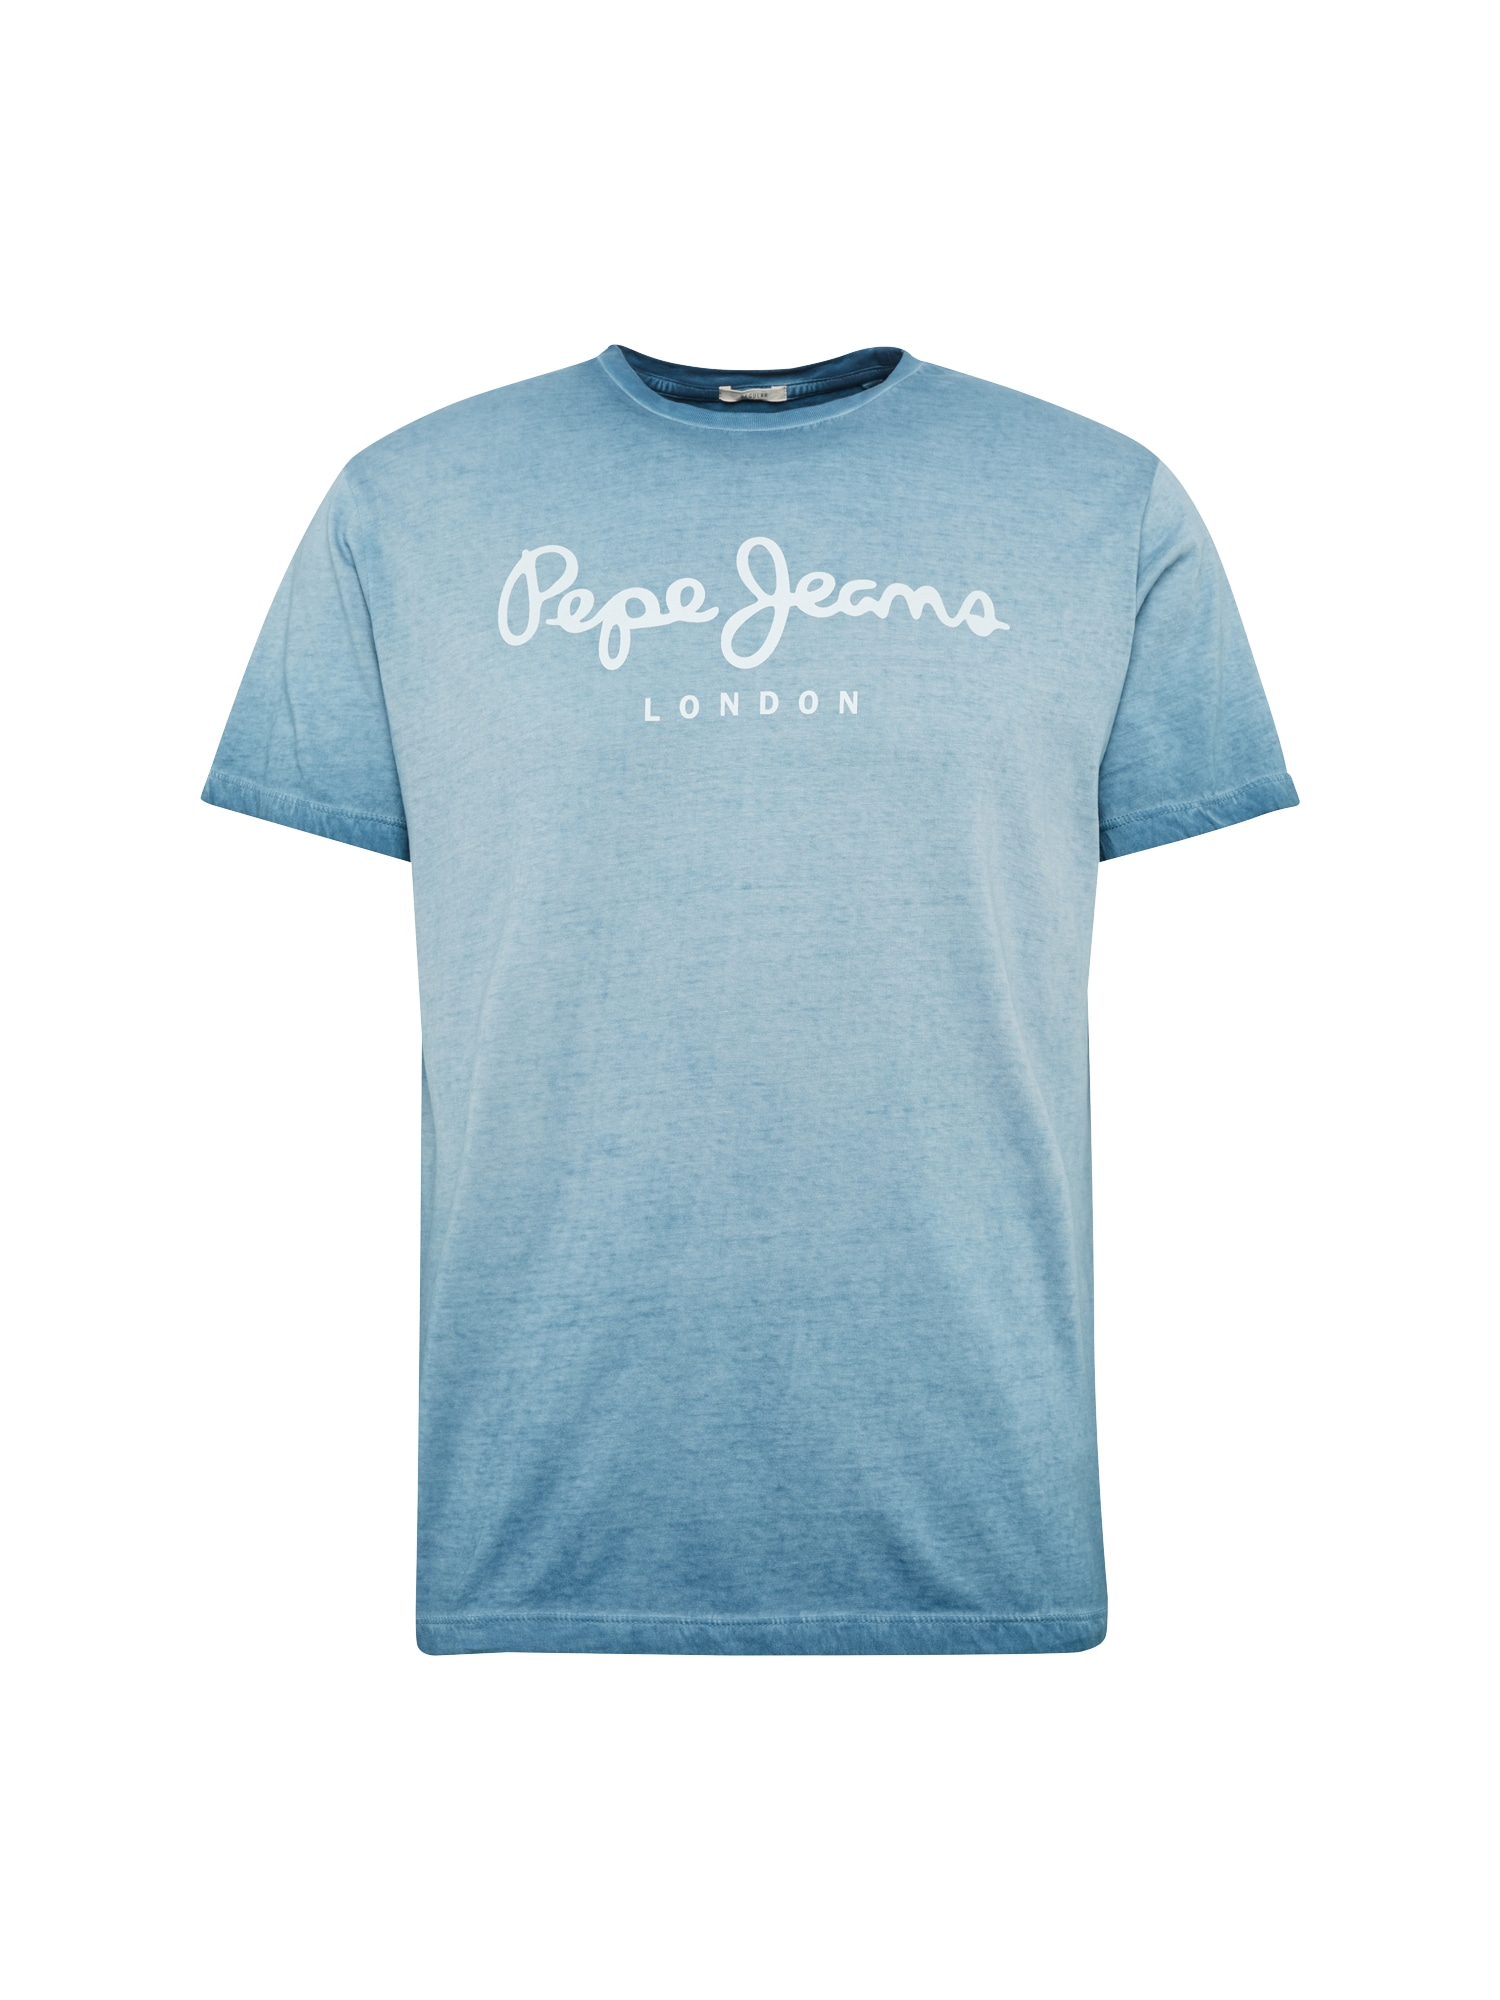 Pepe Jeans Heren Shirt WEST SIR II blauw wit